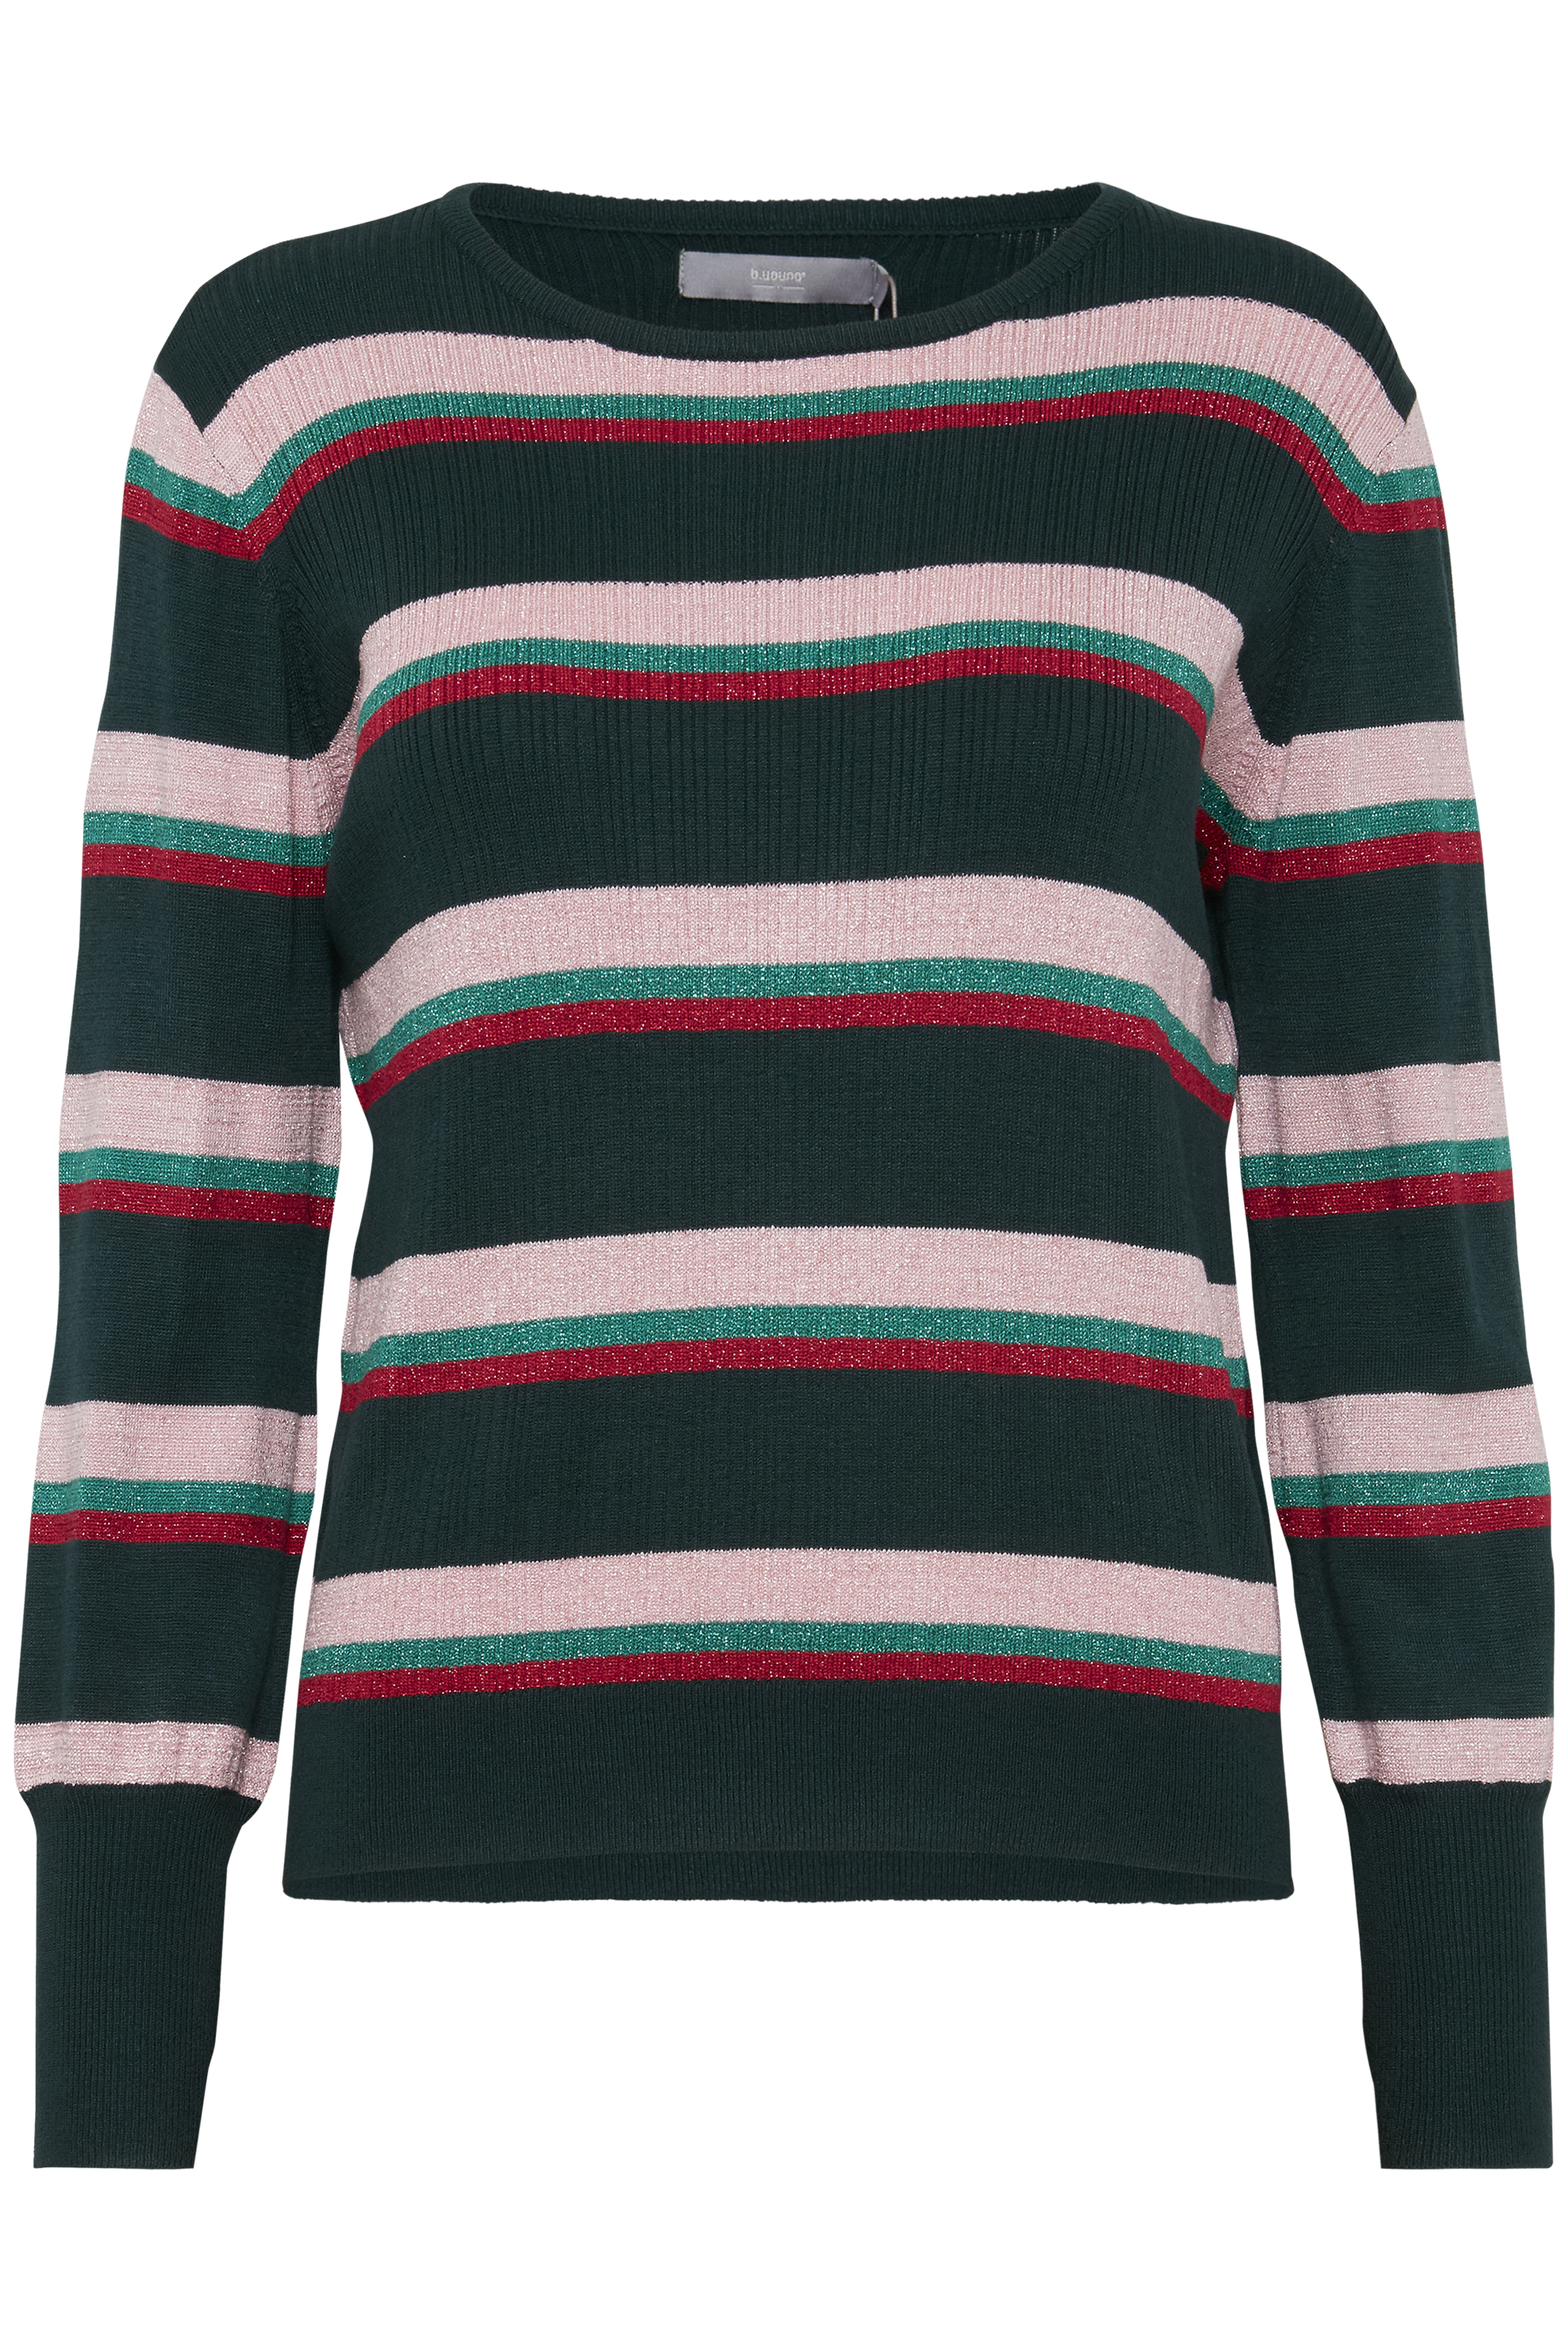 Majestic Green Combi Knitted pullover from b.young – Buy Majestic Green Combi Knitted pullover from size XS-XXL here